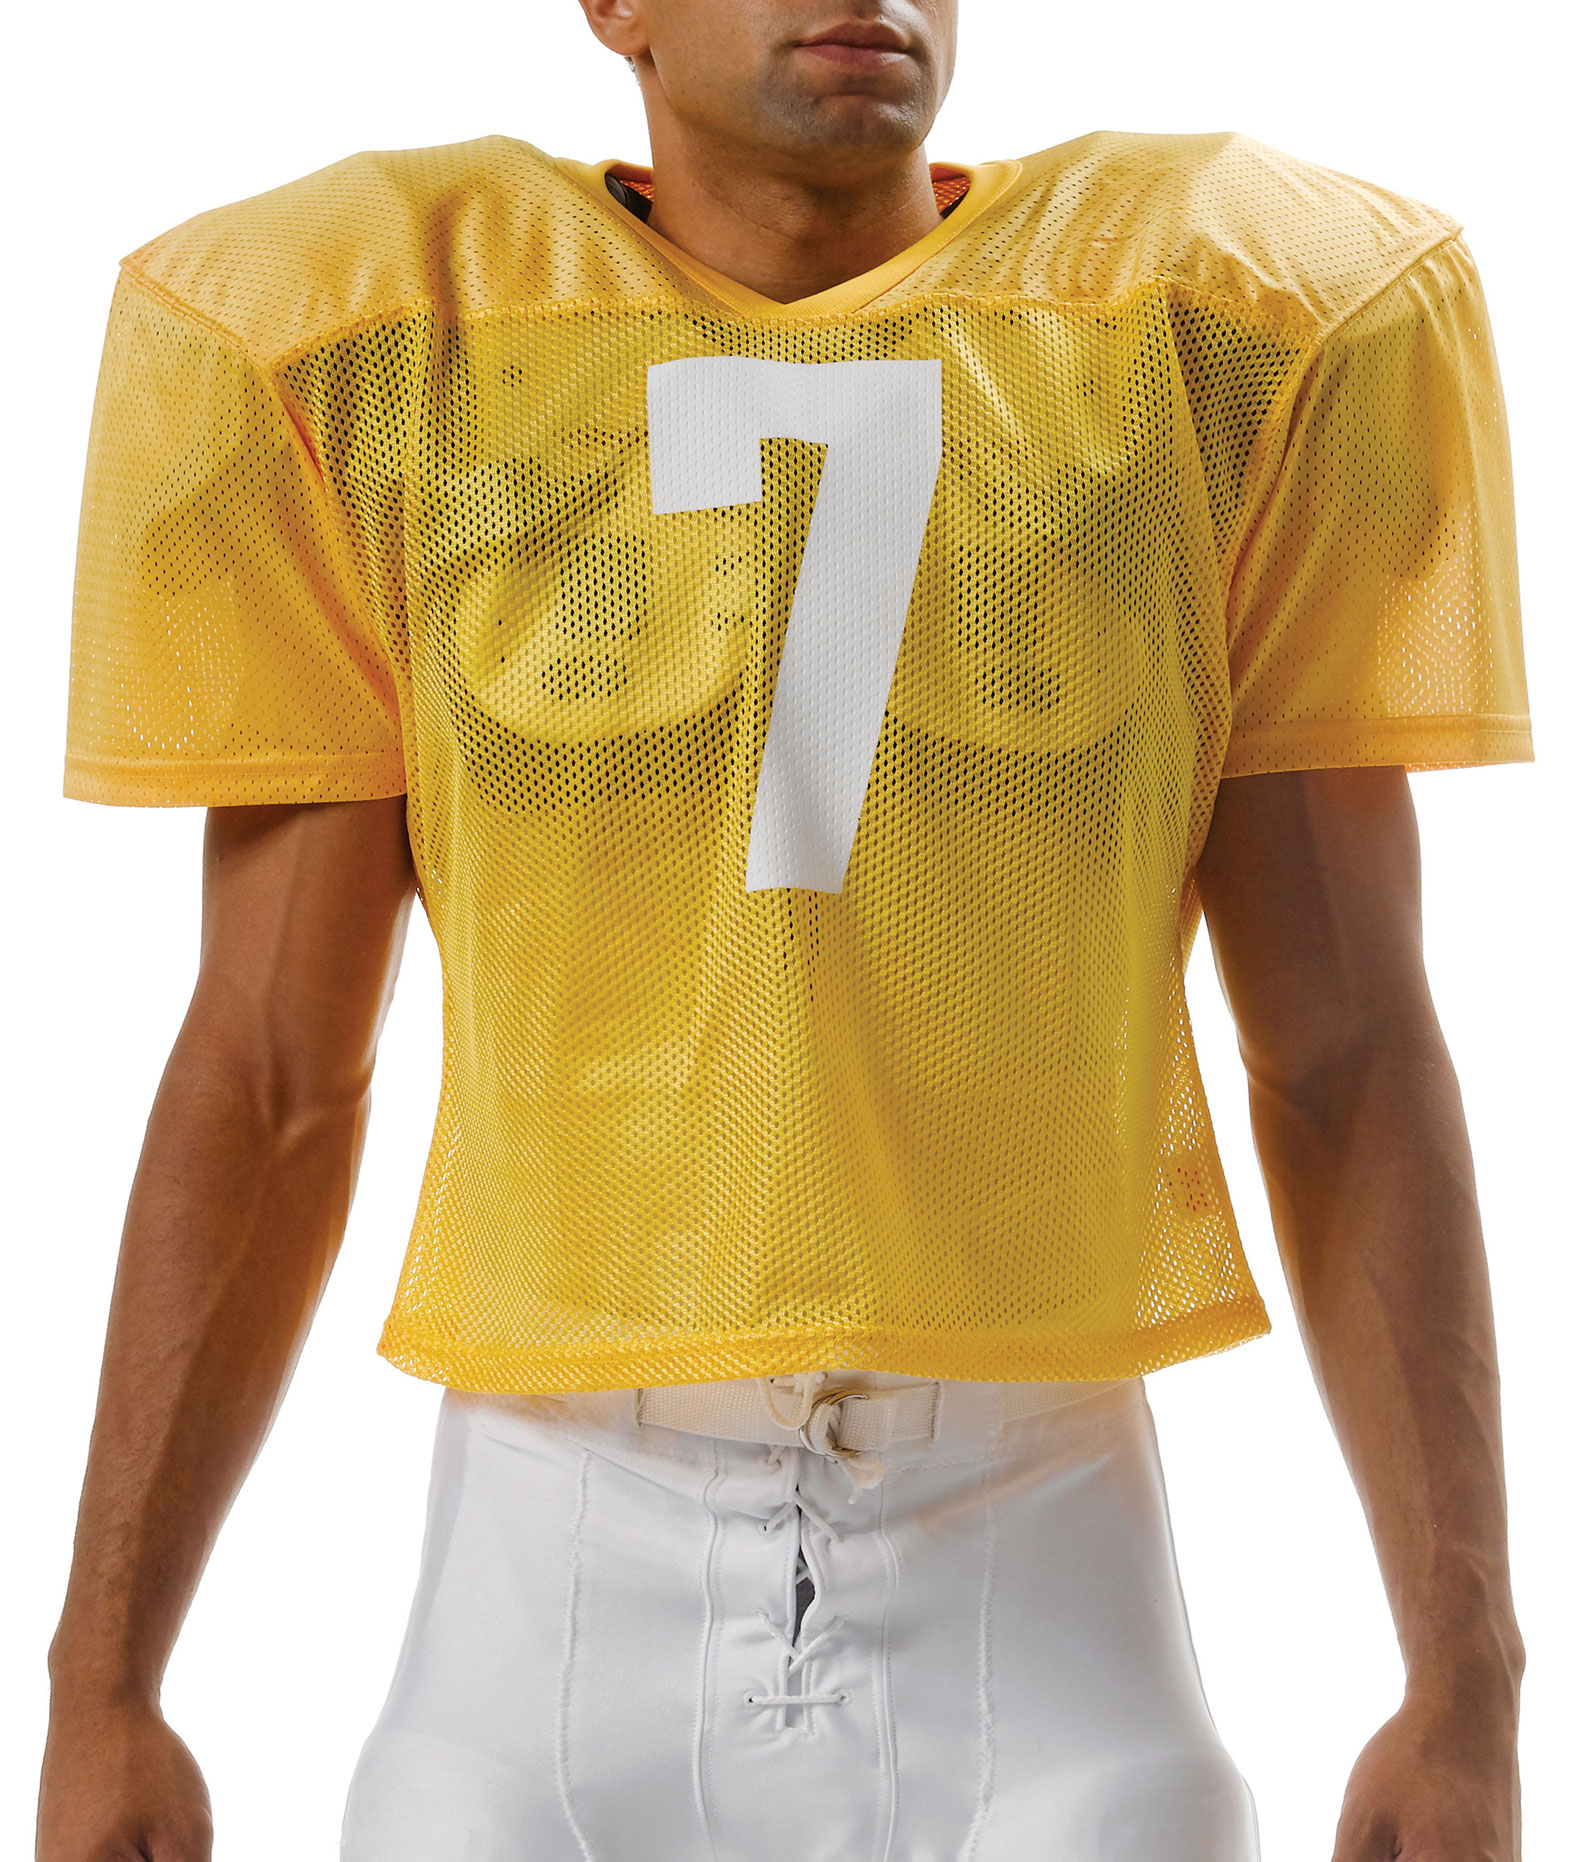 Youth Football Practice Jersey